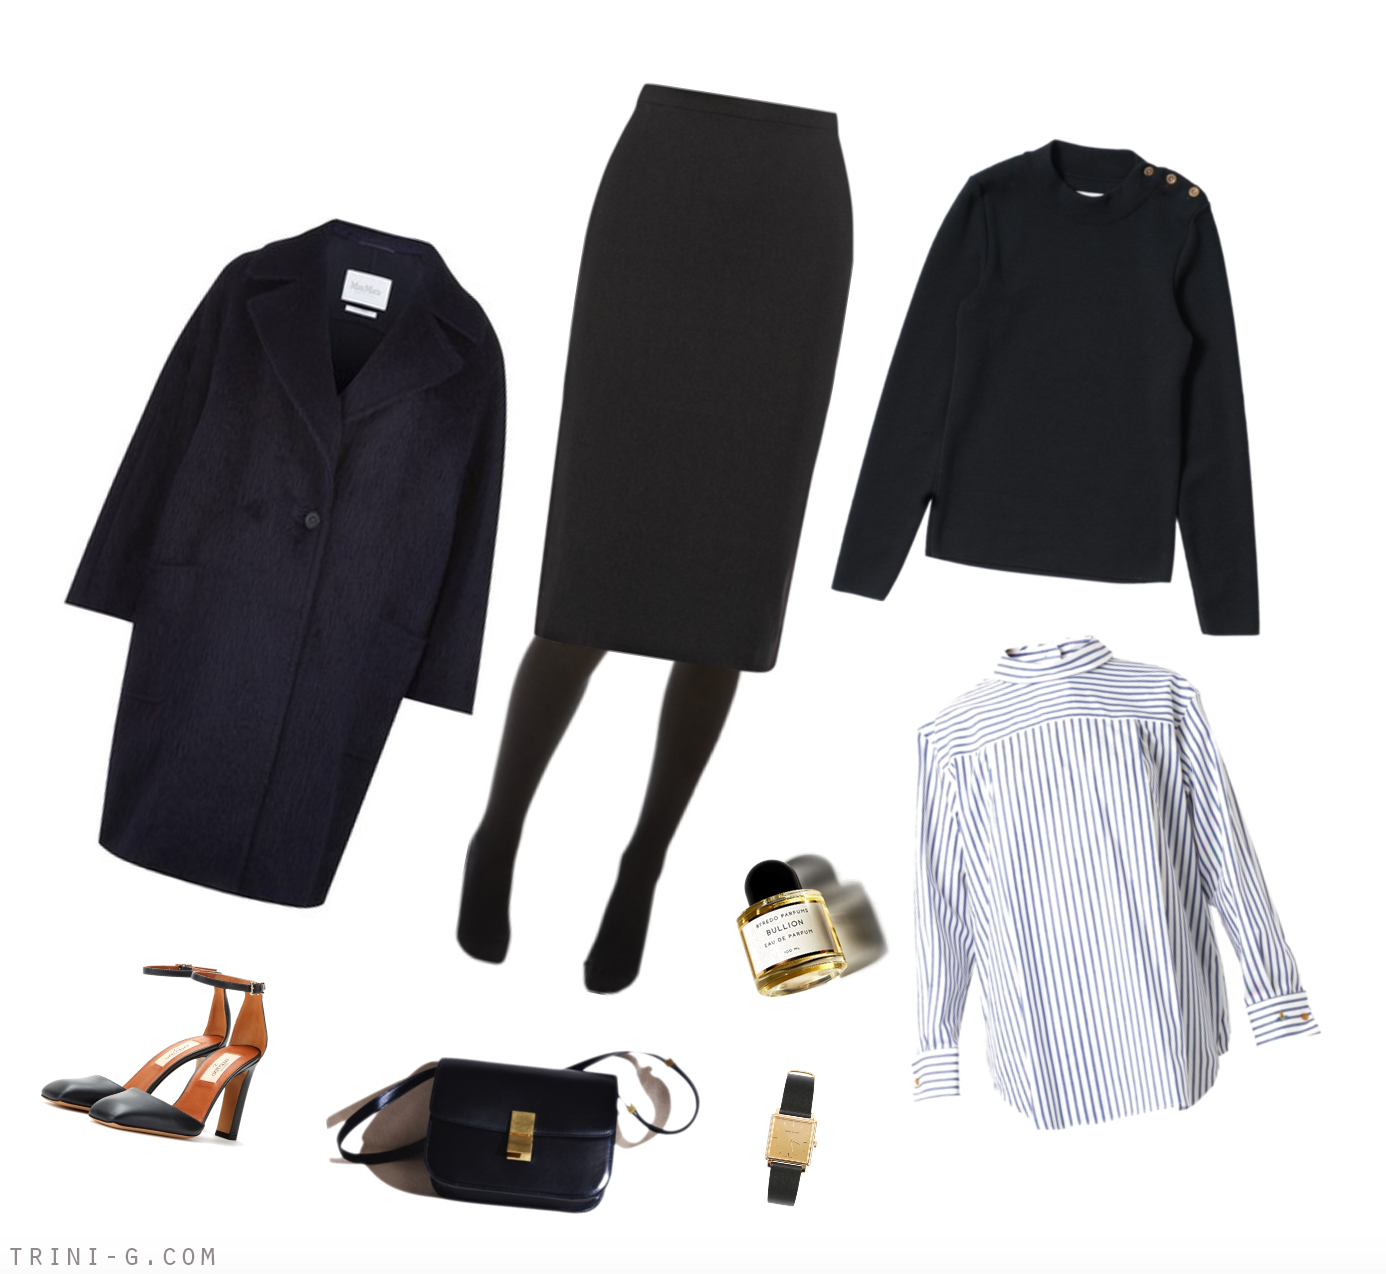 Trini blog| Winter navy outfit